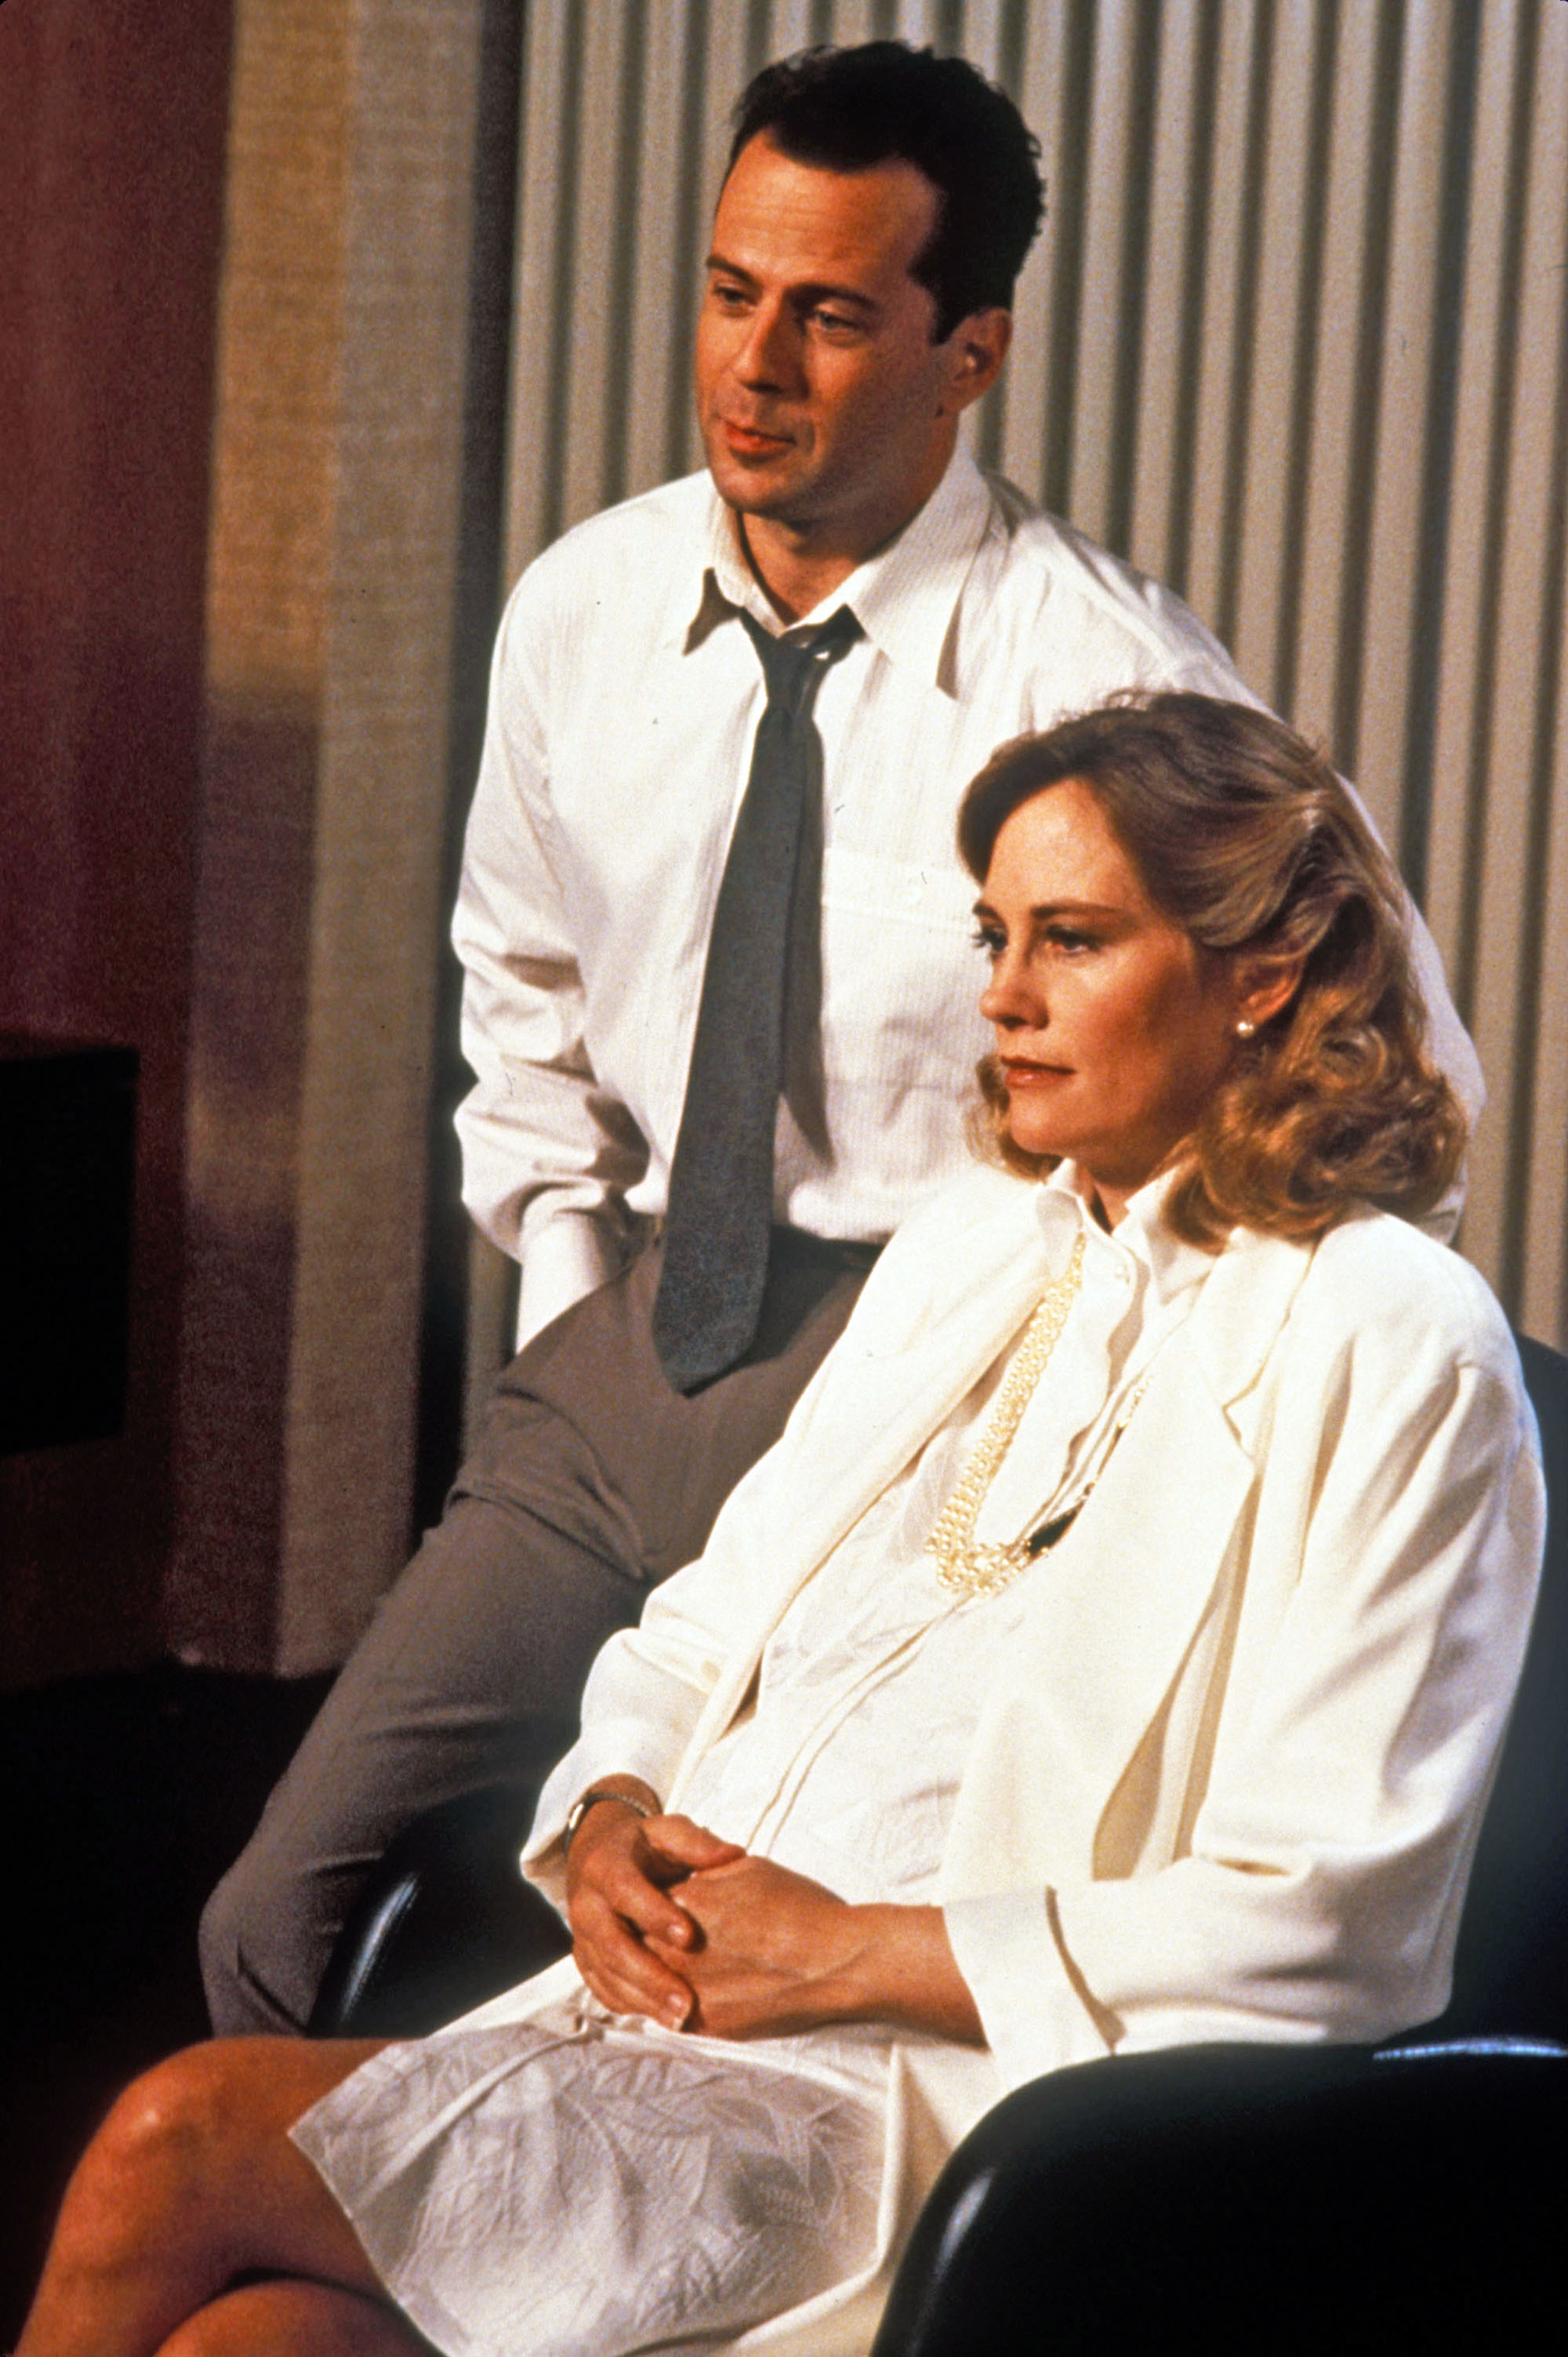 moonlighting cybill shepherd bruce willis allyce beasley complete published 28 2013 at 2000 times 3006 in moonlighting